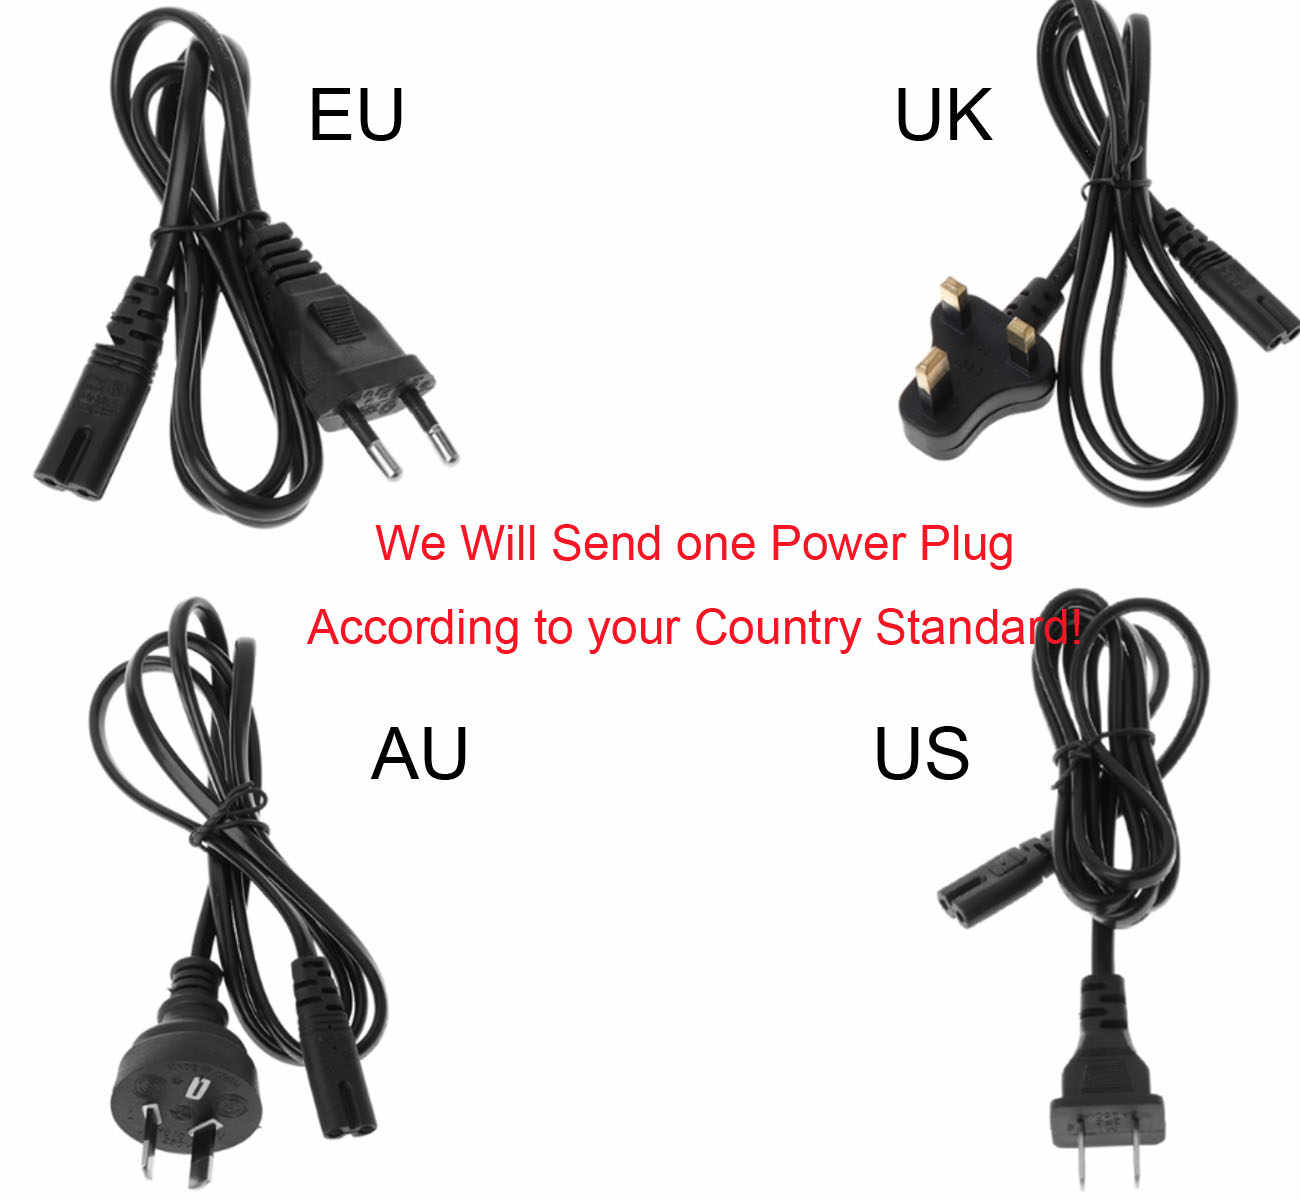 Dual Battery USB Charger for Sony HDR-CX610E HDR-CX630VE Handycam Camcorder HDR-CX625E HDR-CX620E